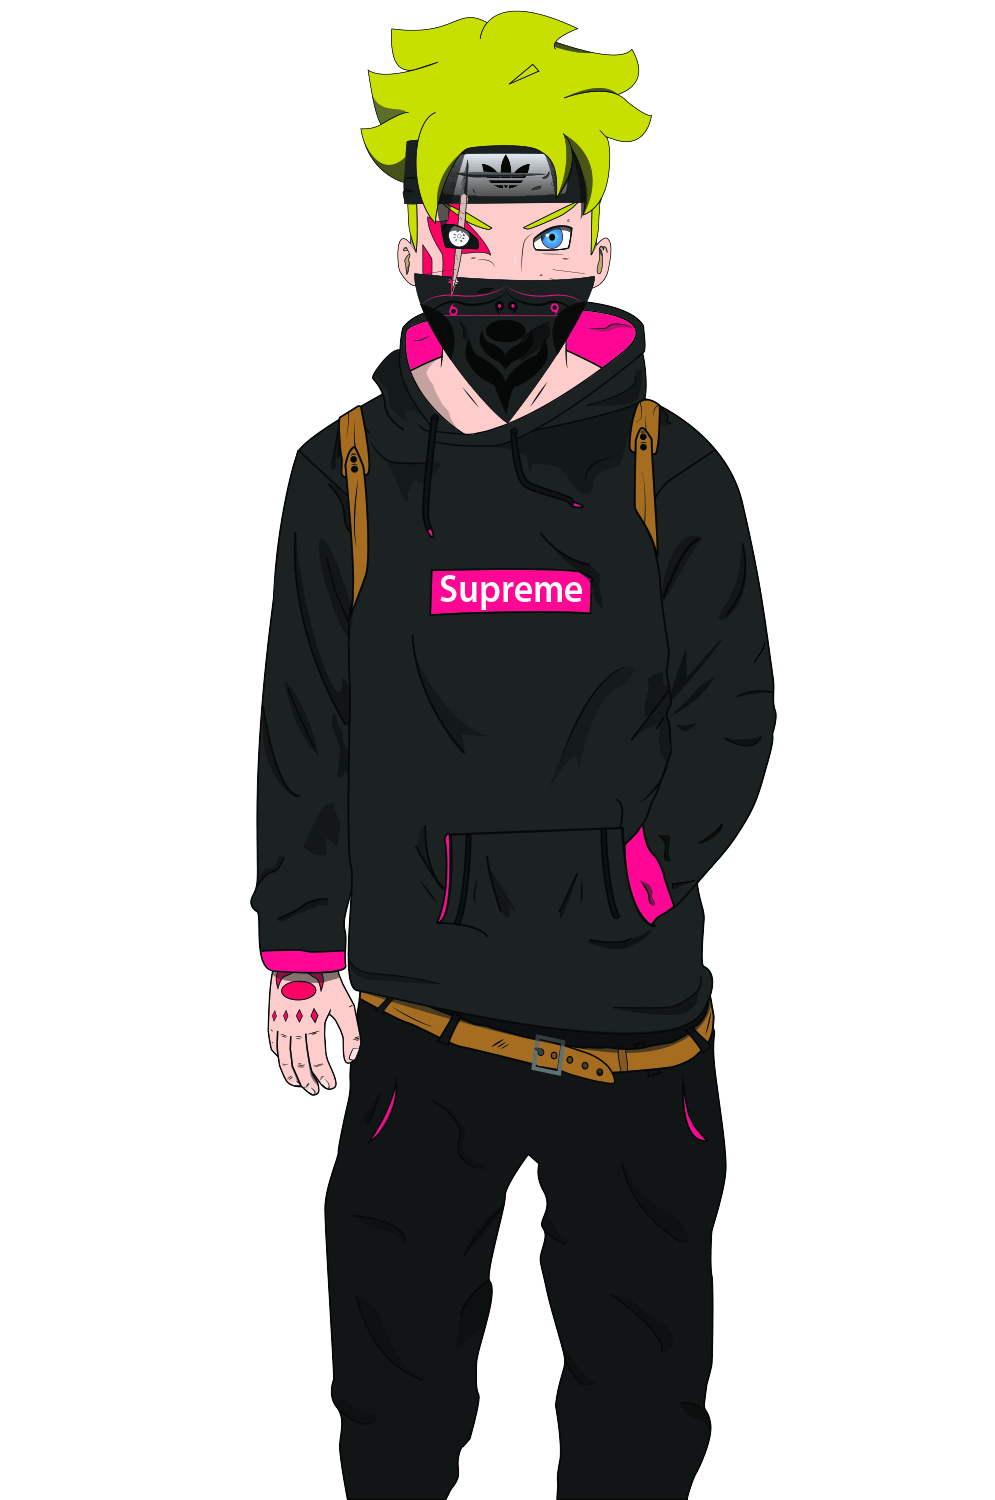 Yeezy Vector Hypebeast Transparent & PNG Clipart Free Download